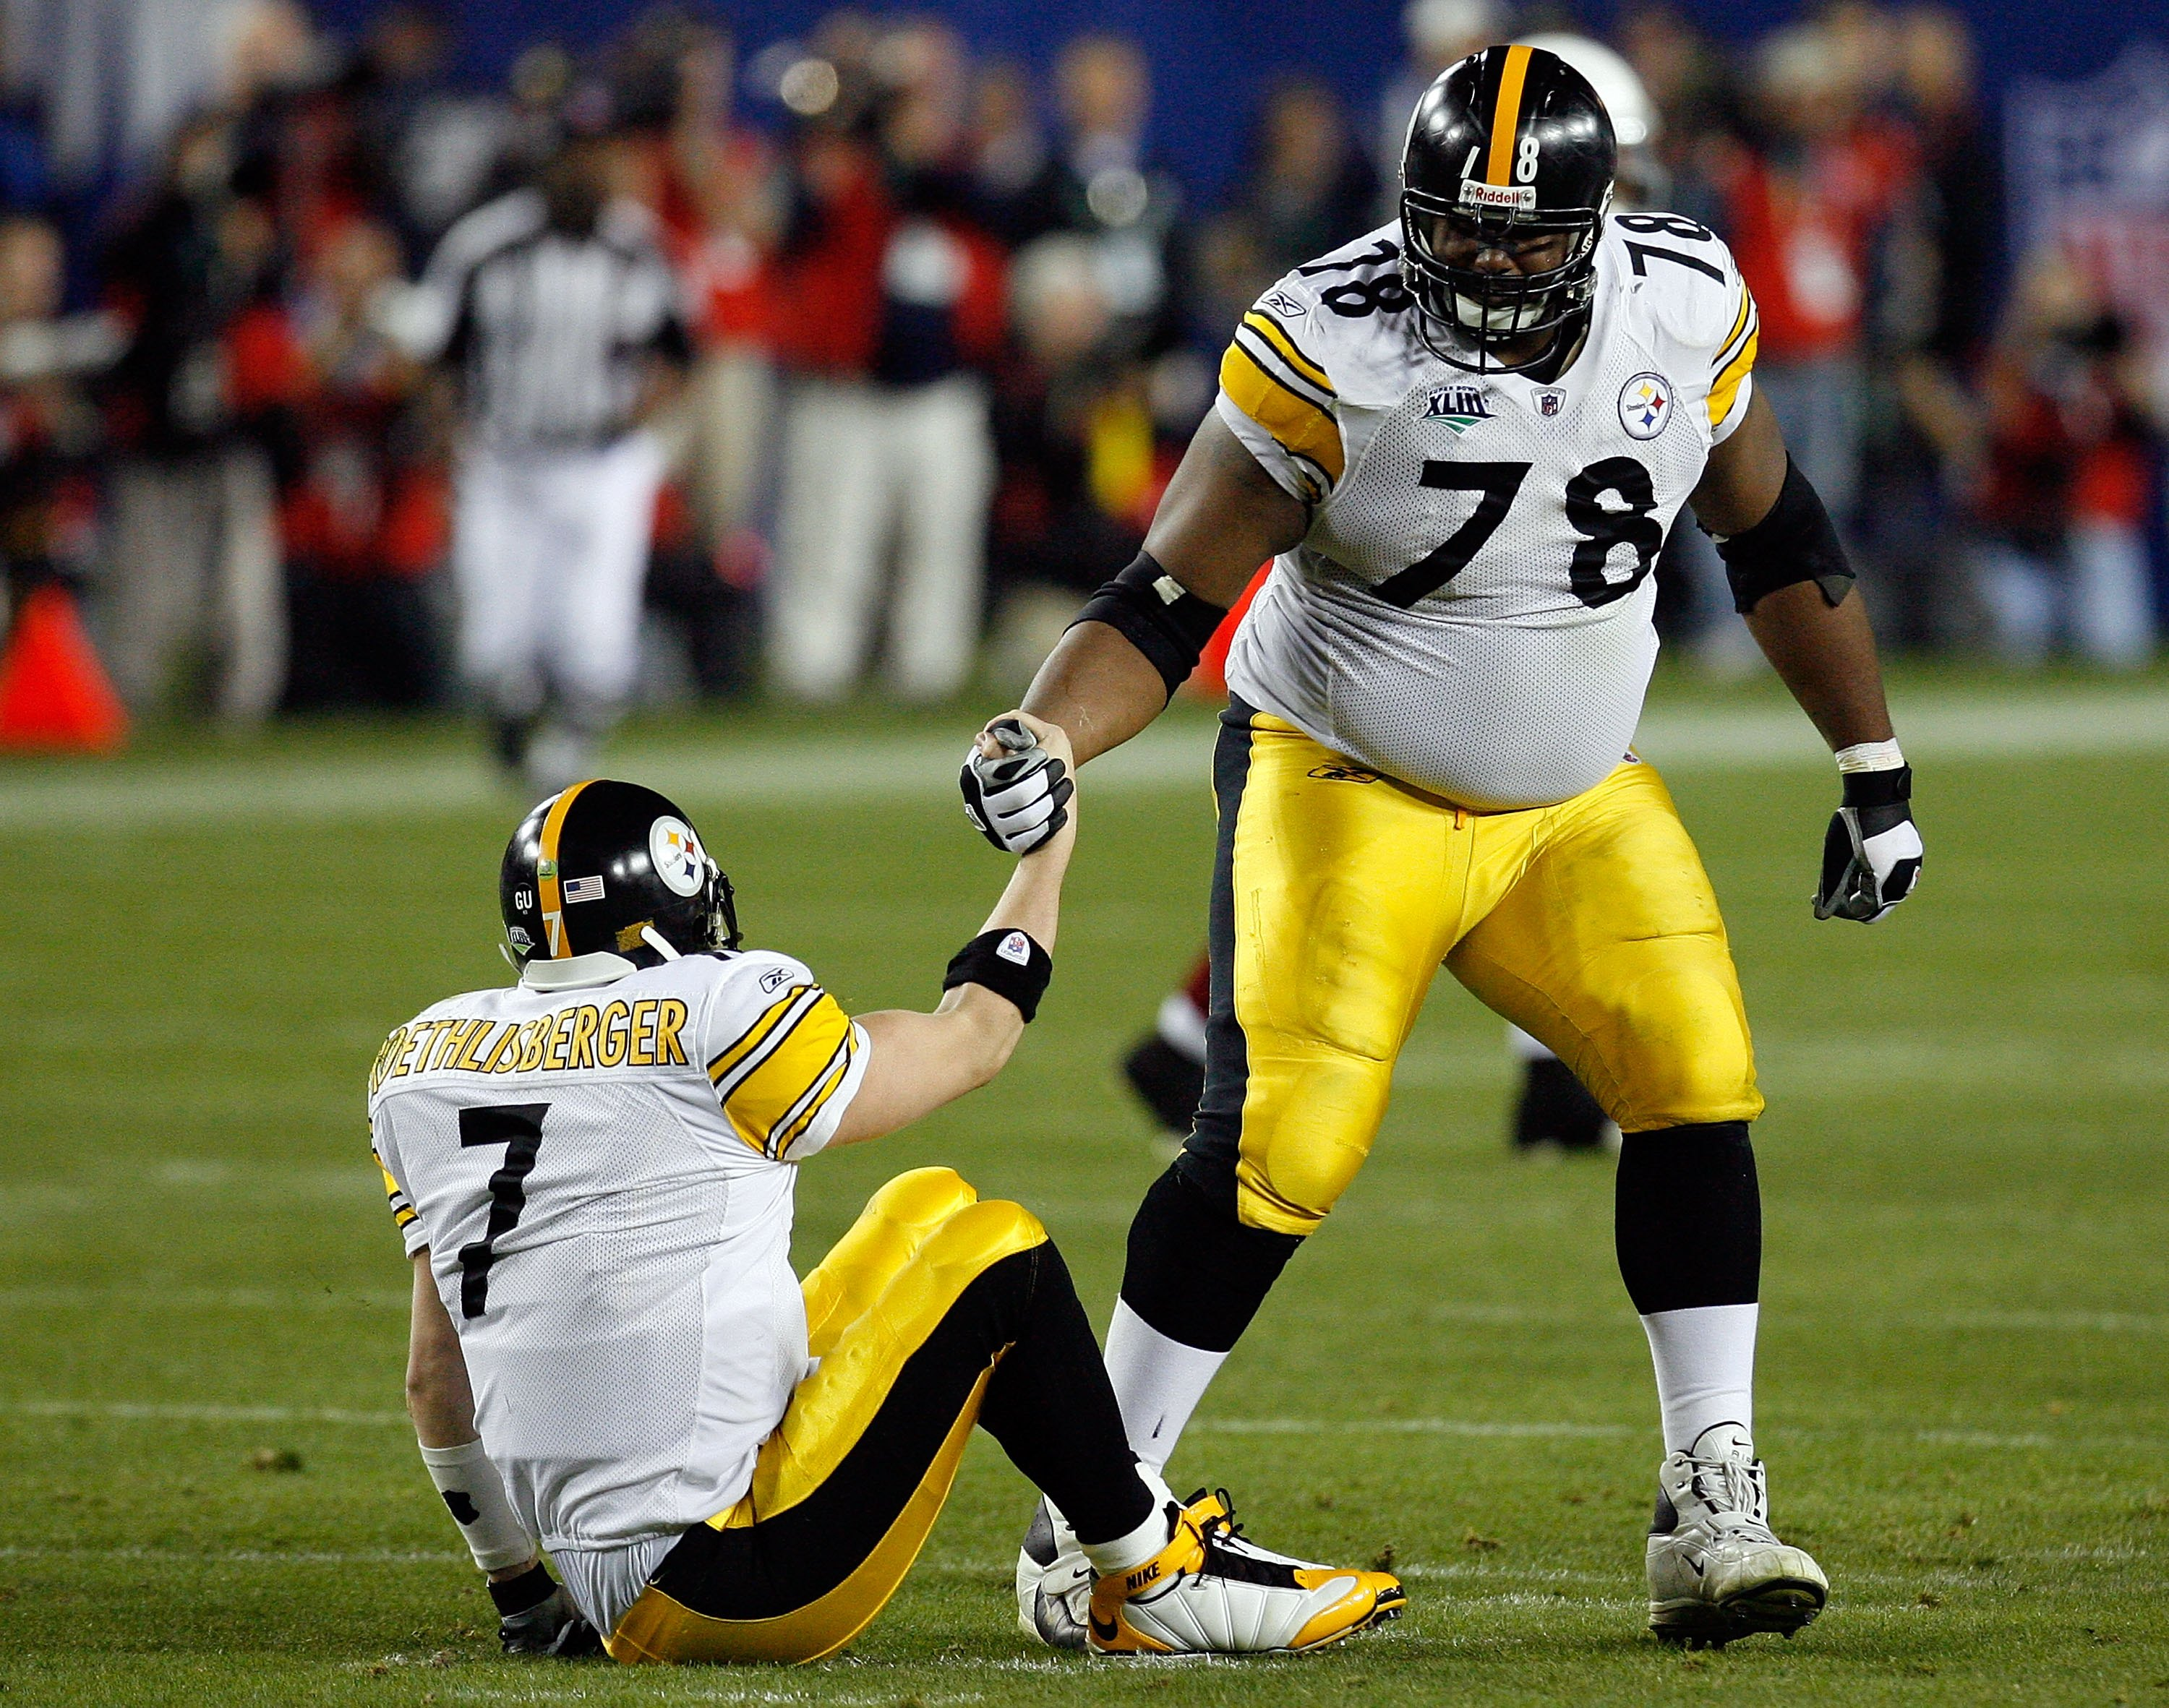 TAMPA, FL - FEBRUARY 01:  Quarterback Ben Roethlisberger #7 of the Pittsburgh Steelers is helped up by teammate Max Starks #78 against the Arizona Cardinals during Super Bowl XLIII on February 1, 2009 at Raymond James Stadium in Tampa, Florida.  (Photo by